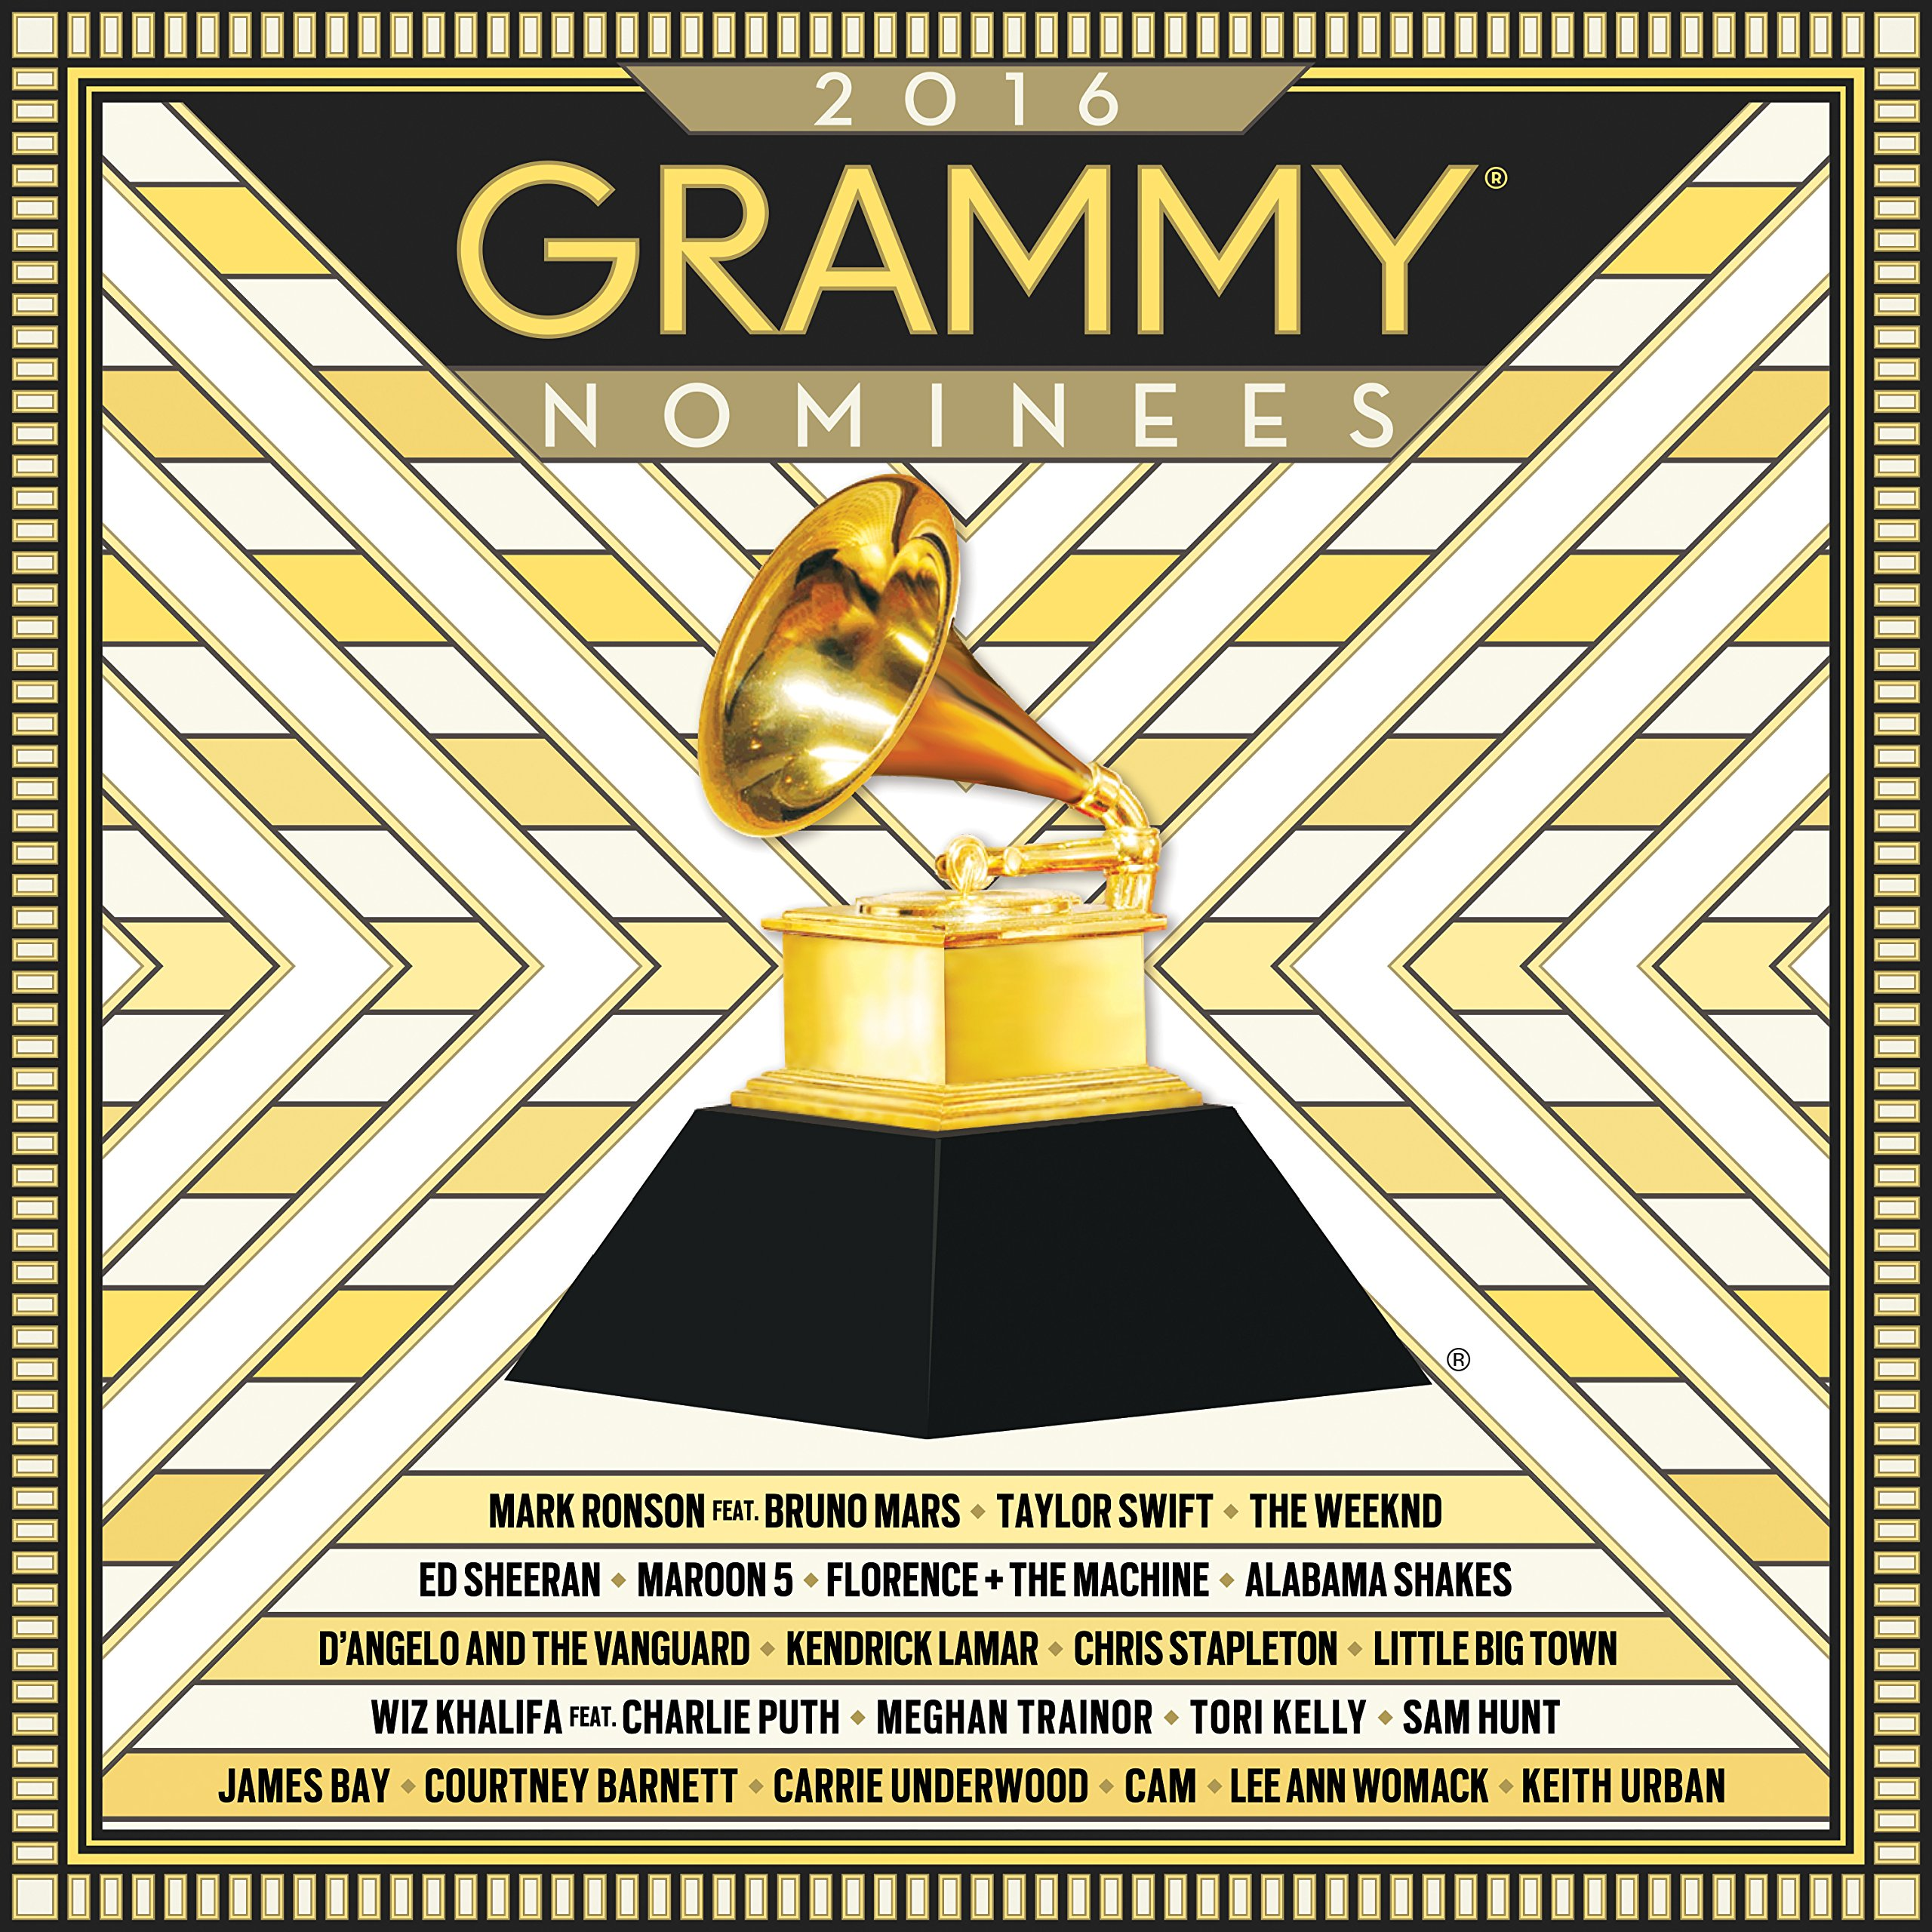 2016 GRAMMY Nominee Compilation Album